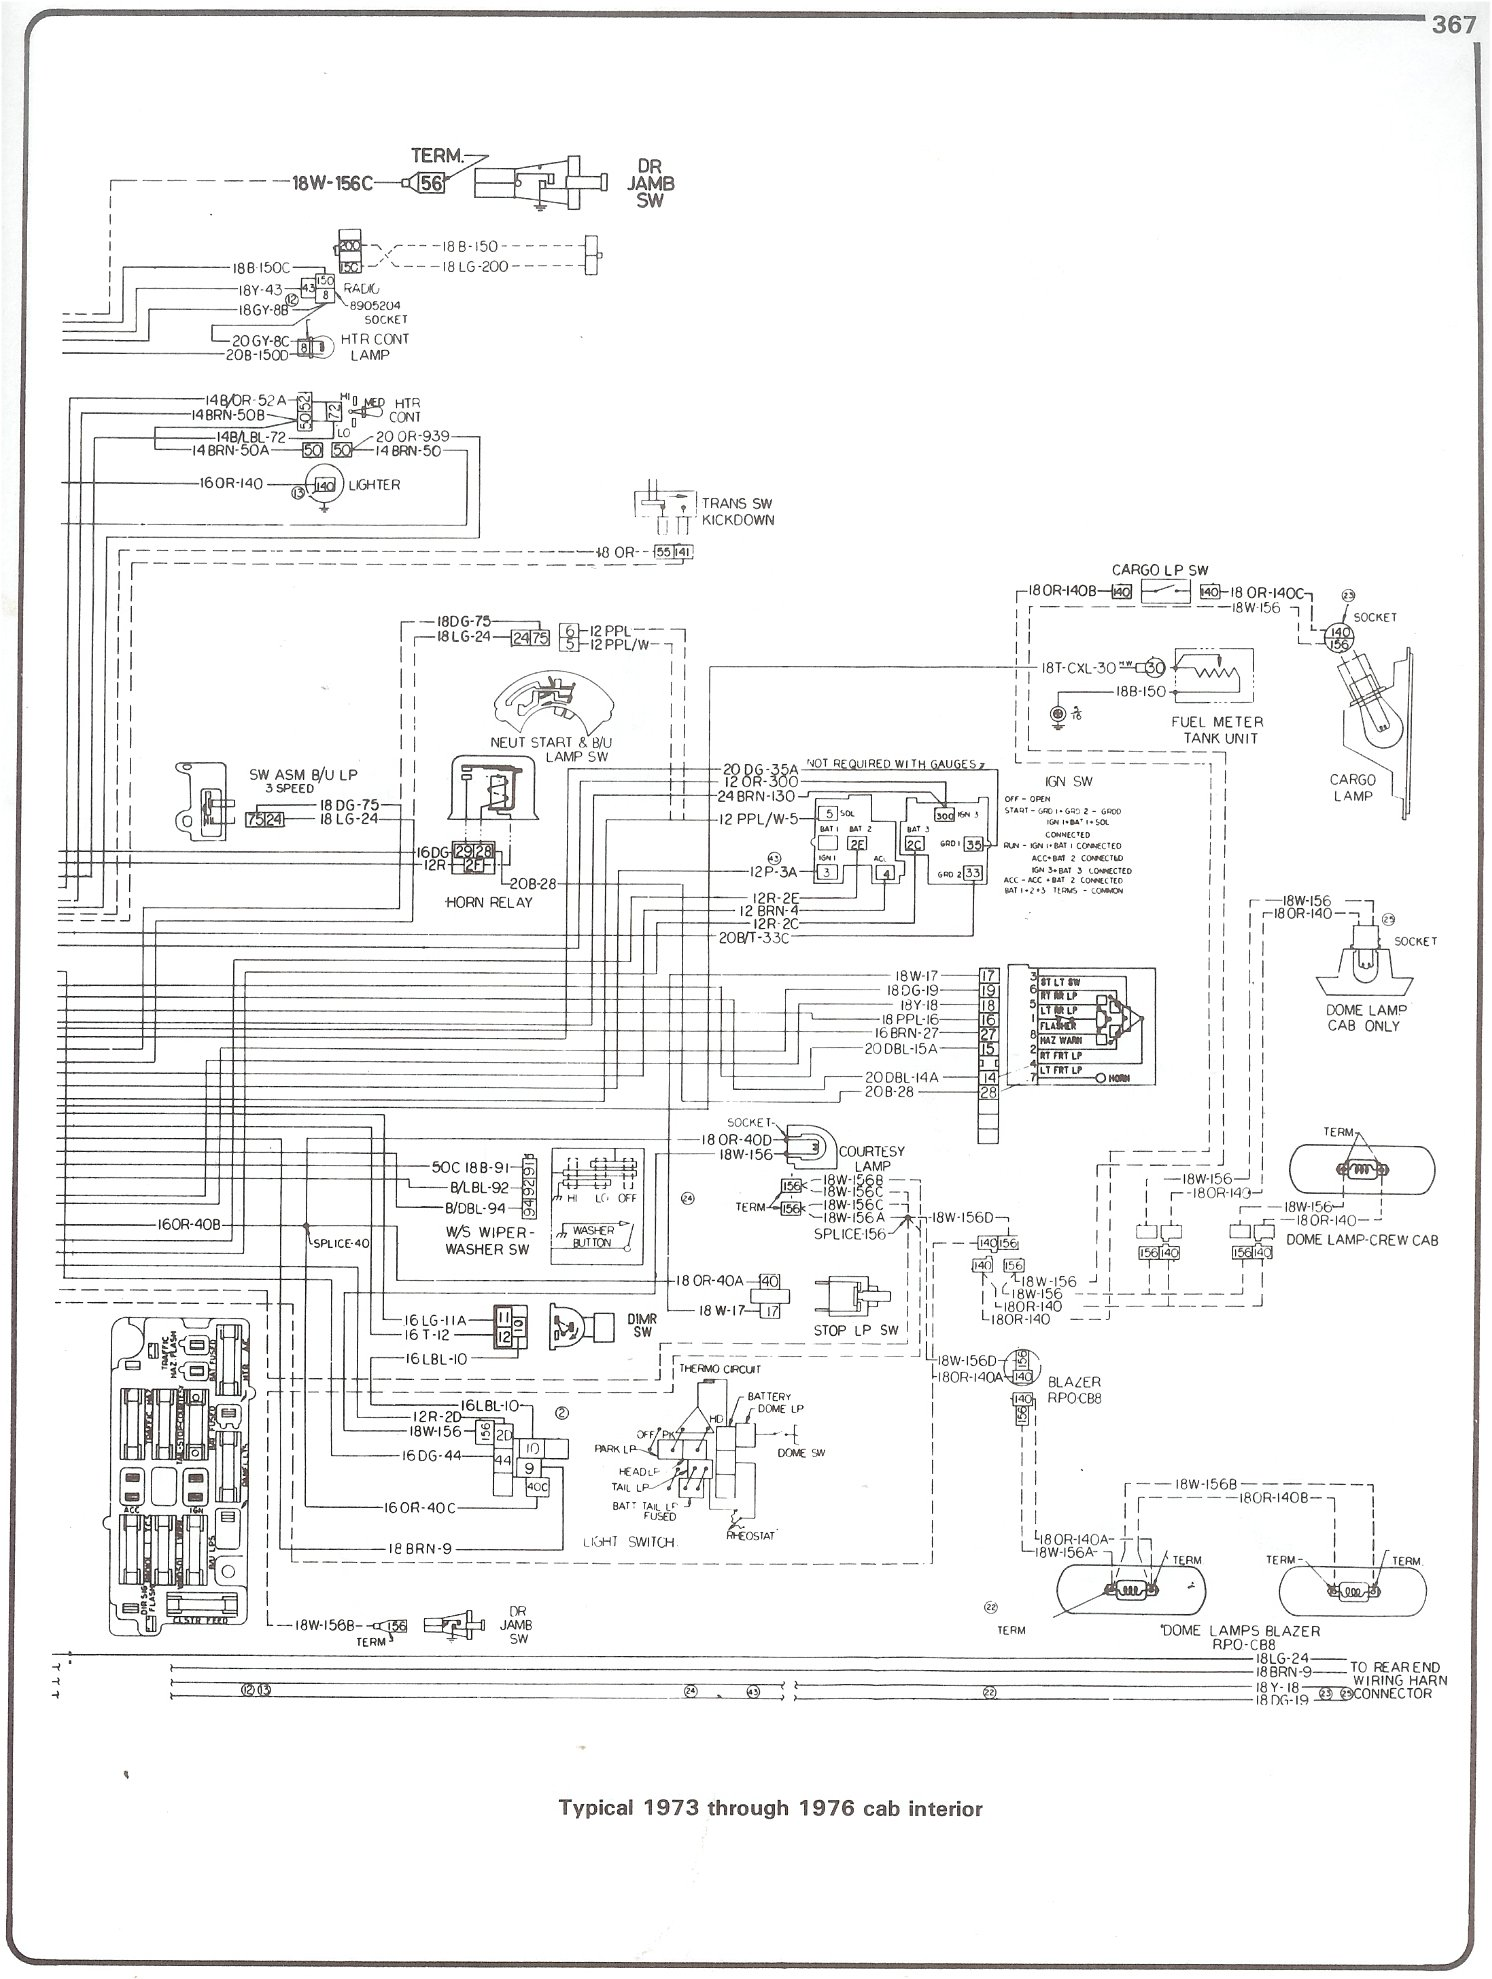 1970 Chevy Pickup Brake Light Wiring Diagram Reveolution Of Ford 1977 Detailed Schematics Rh Jppastryarts Com 350 Starter